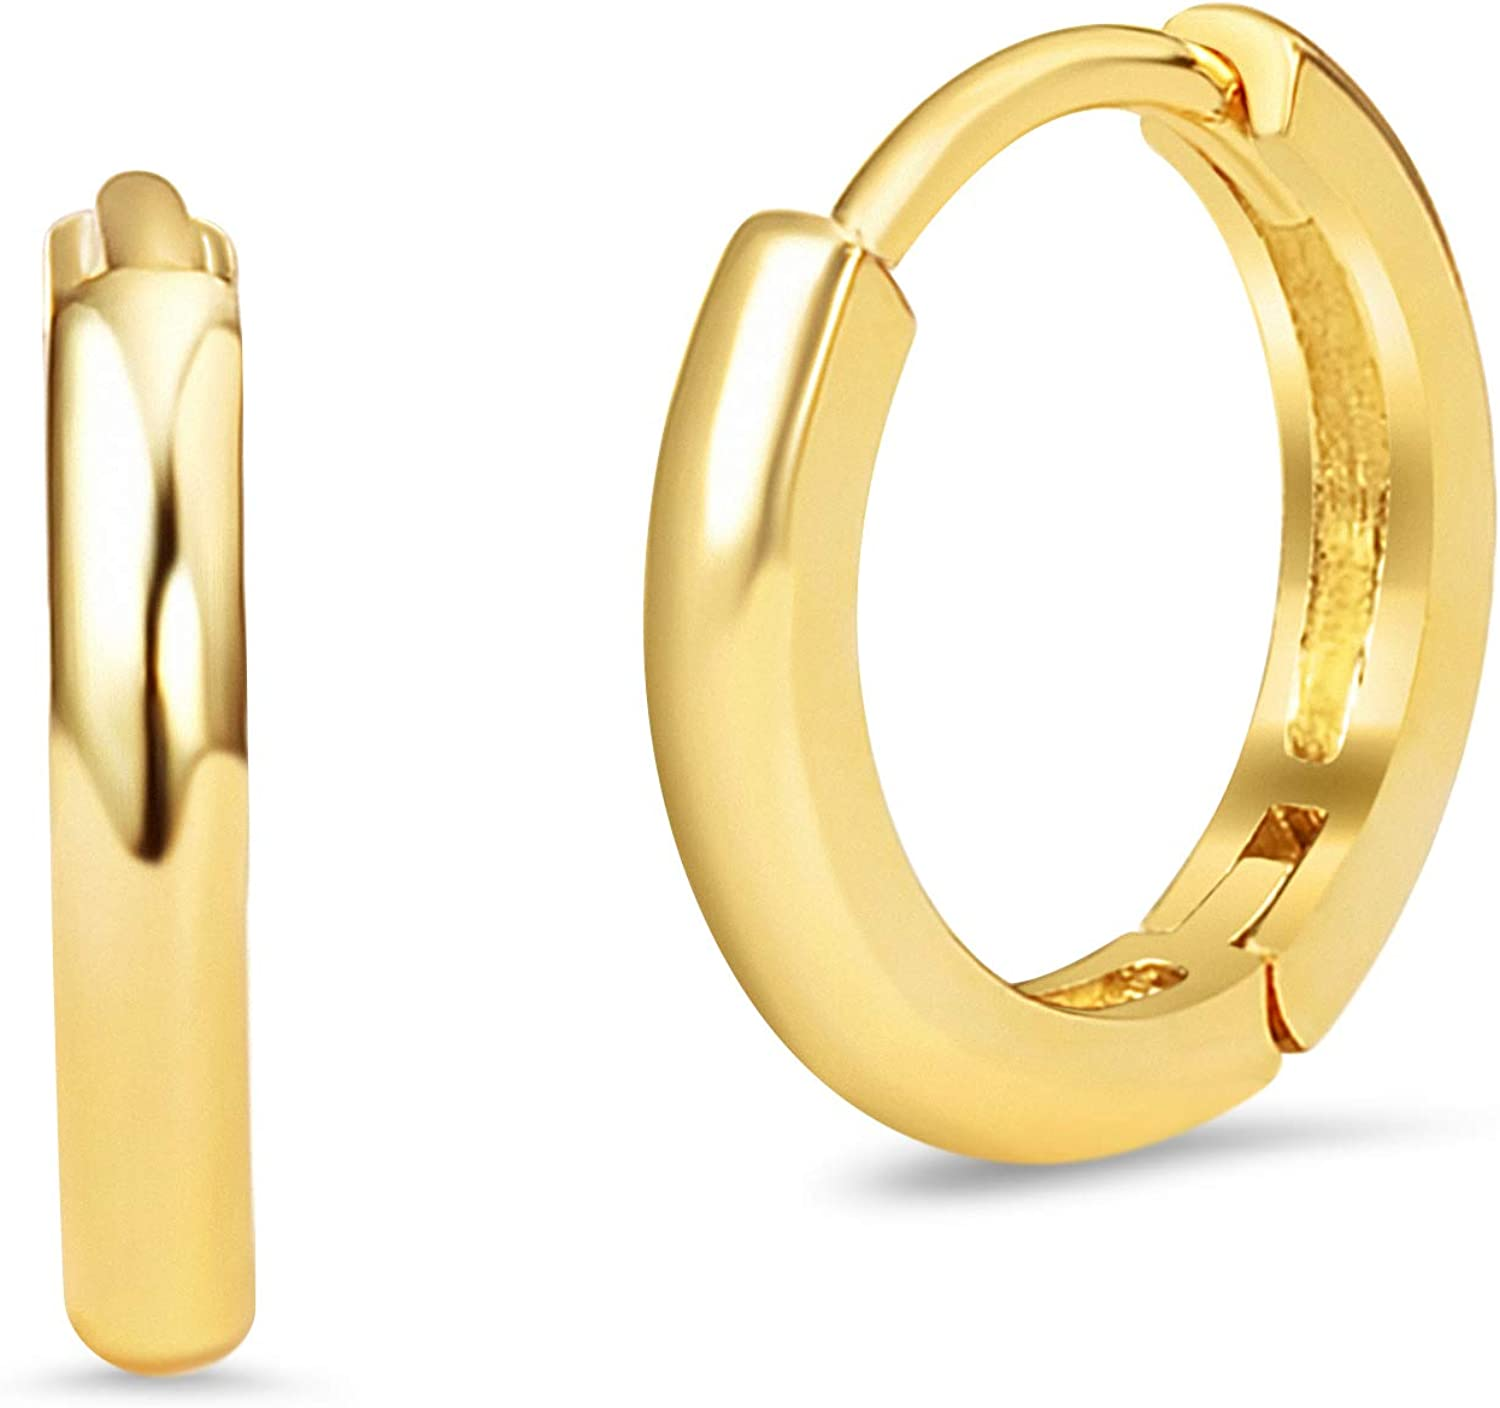 Details about  /14K Yellow Gold Madi K Children/'s 15 MM Hoop Earrings MSRP $114